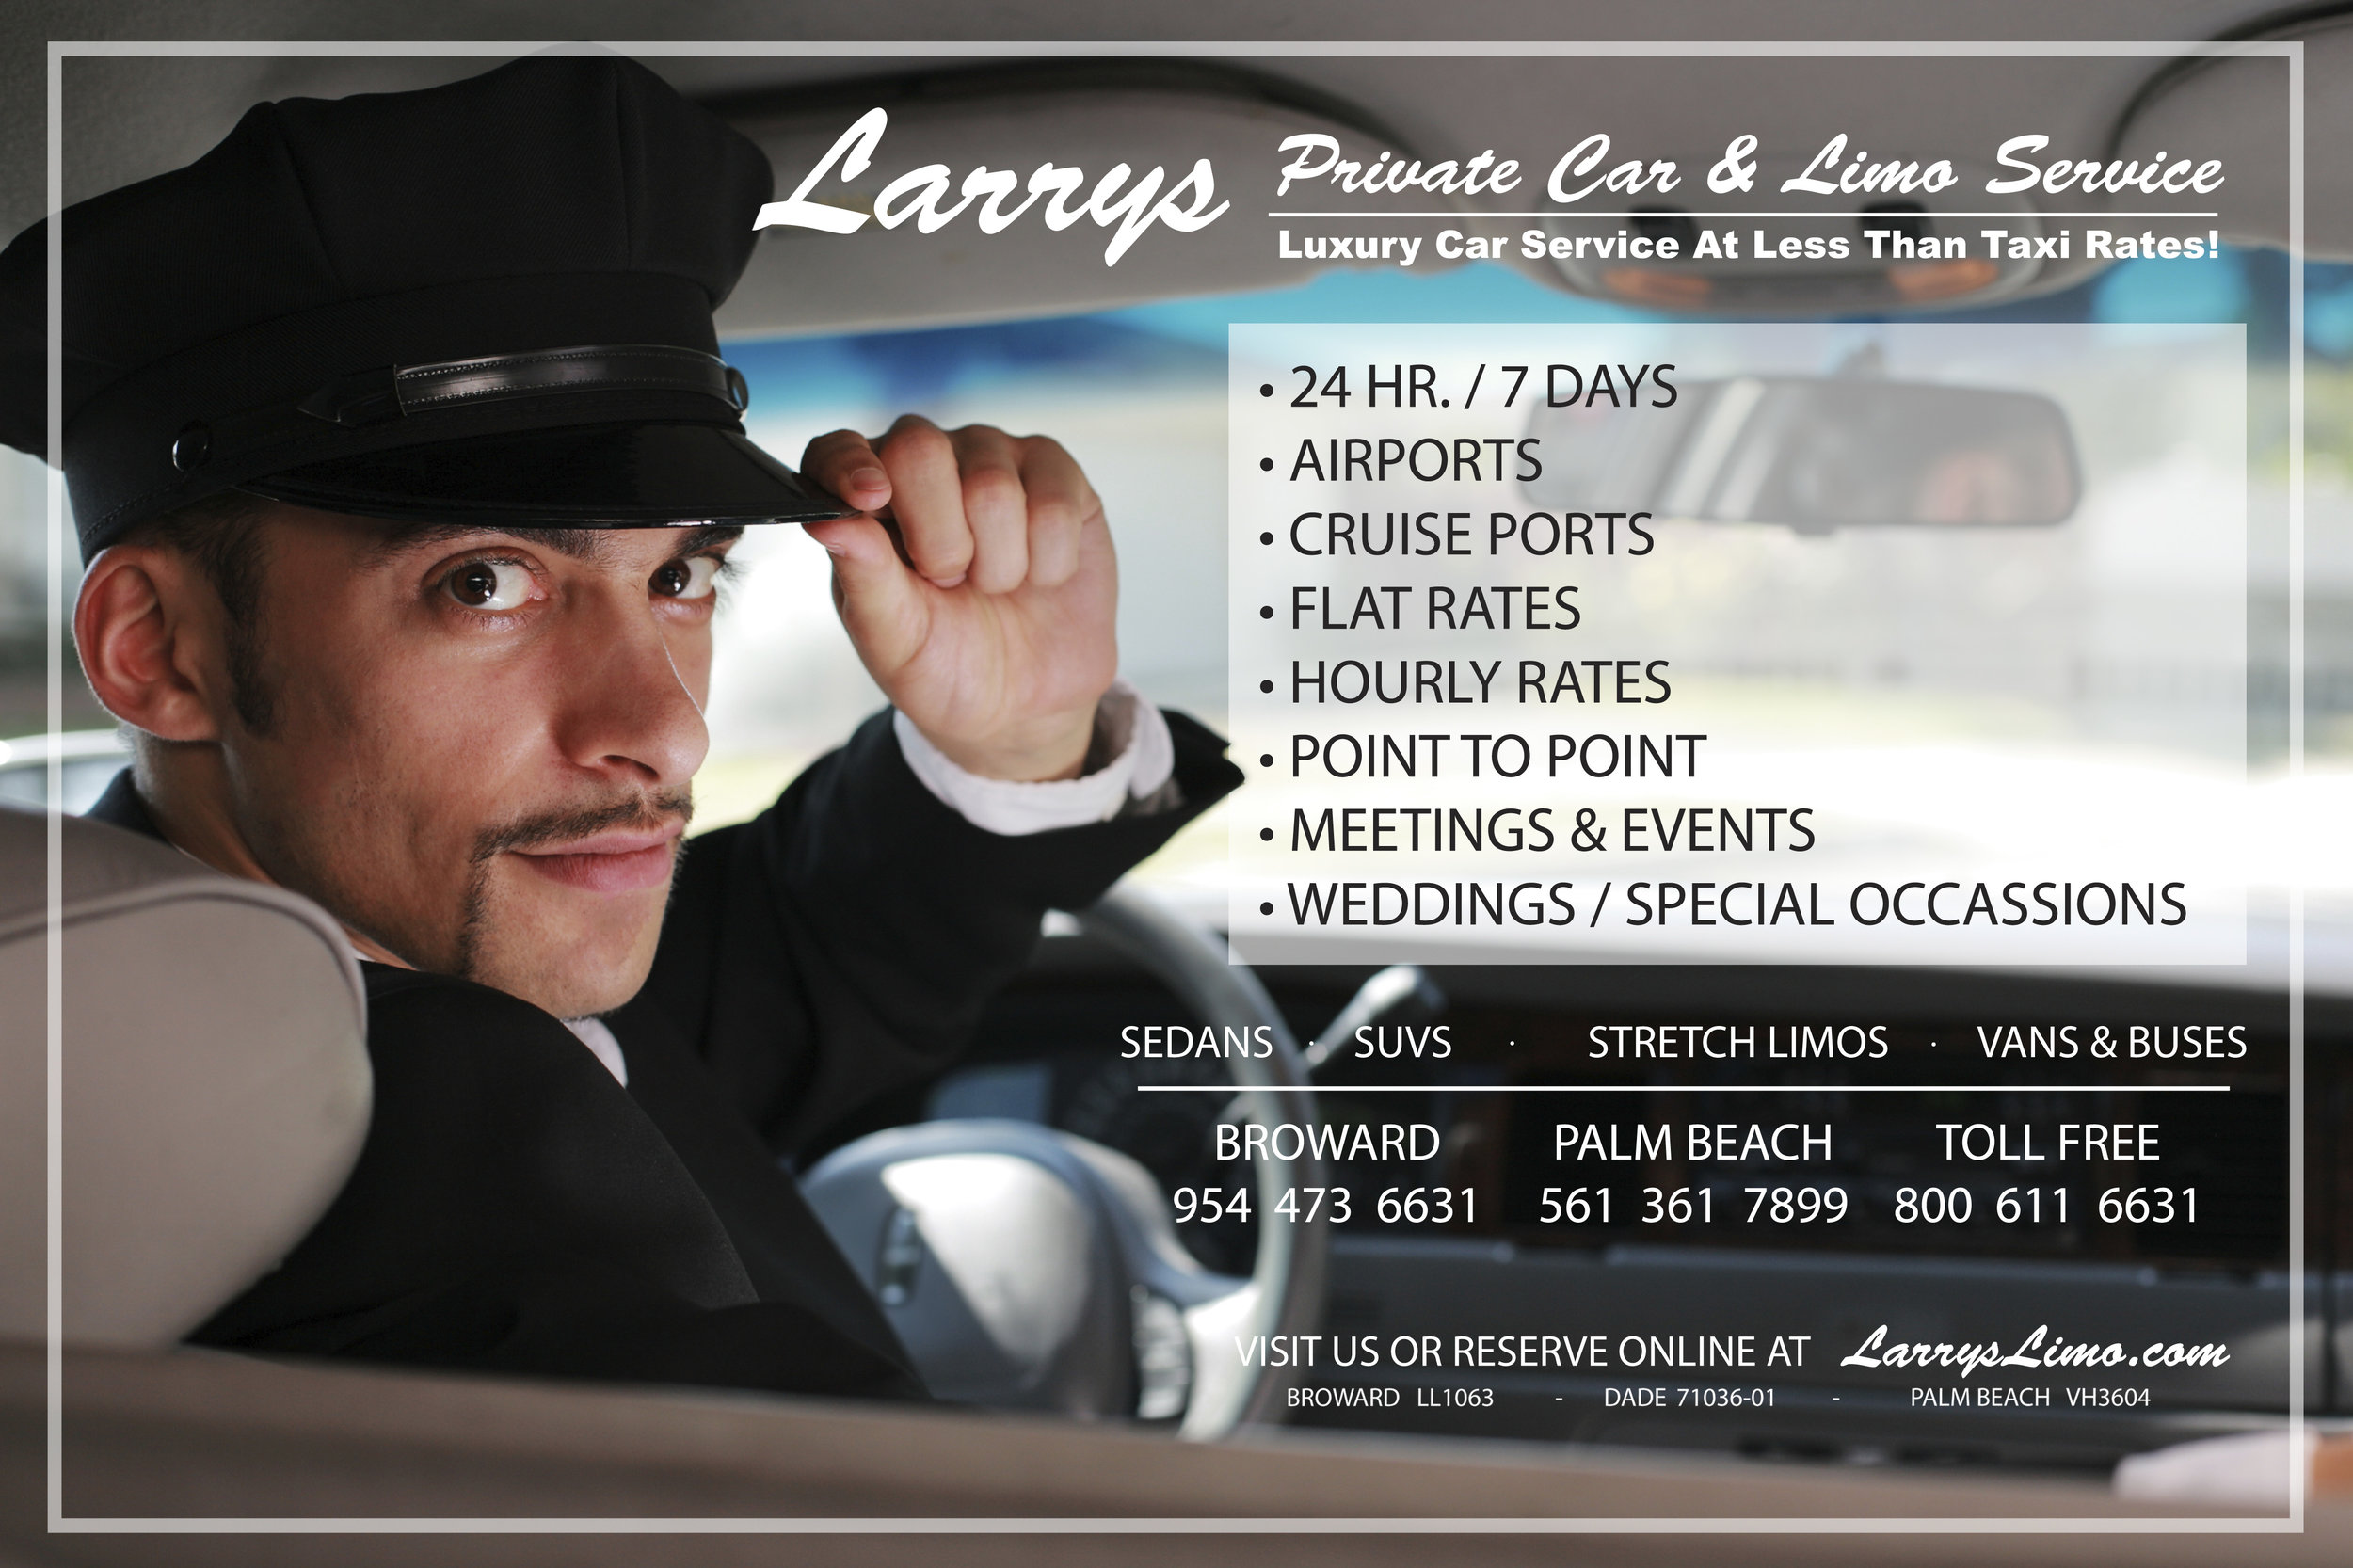 chauffeur ad - no coupons.jpg